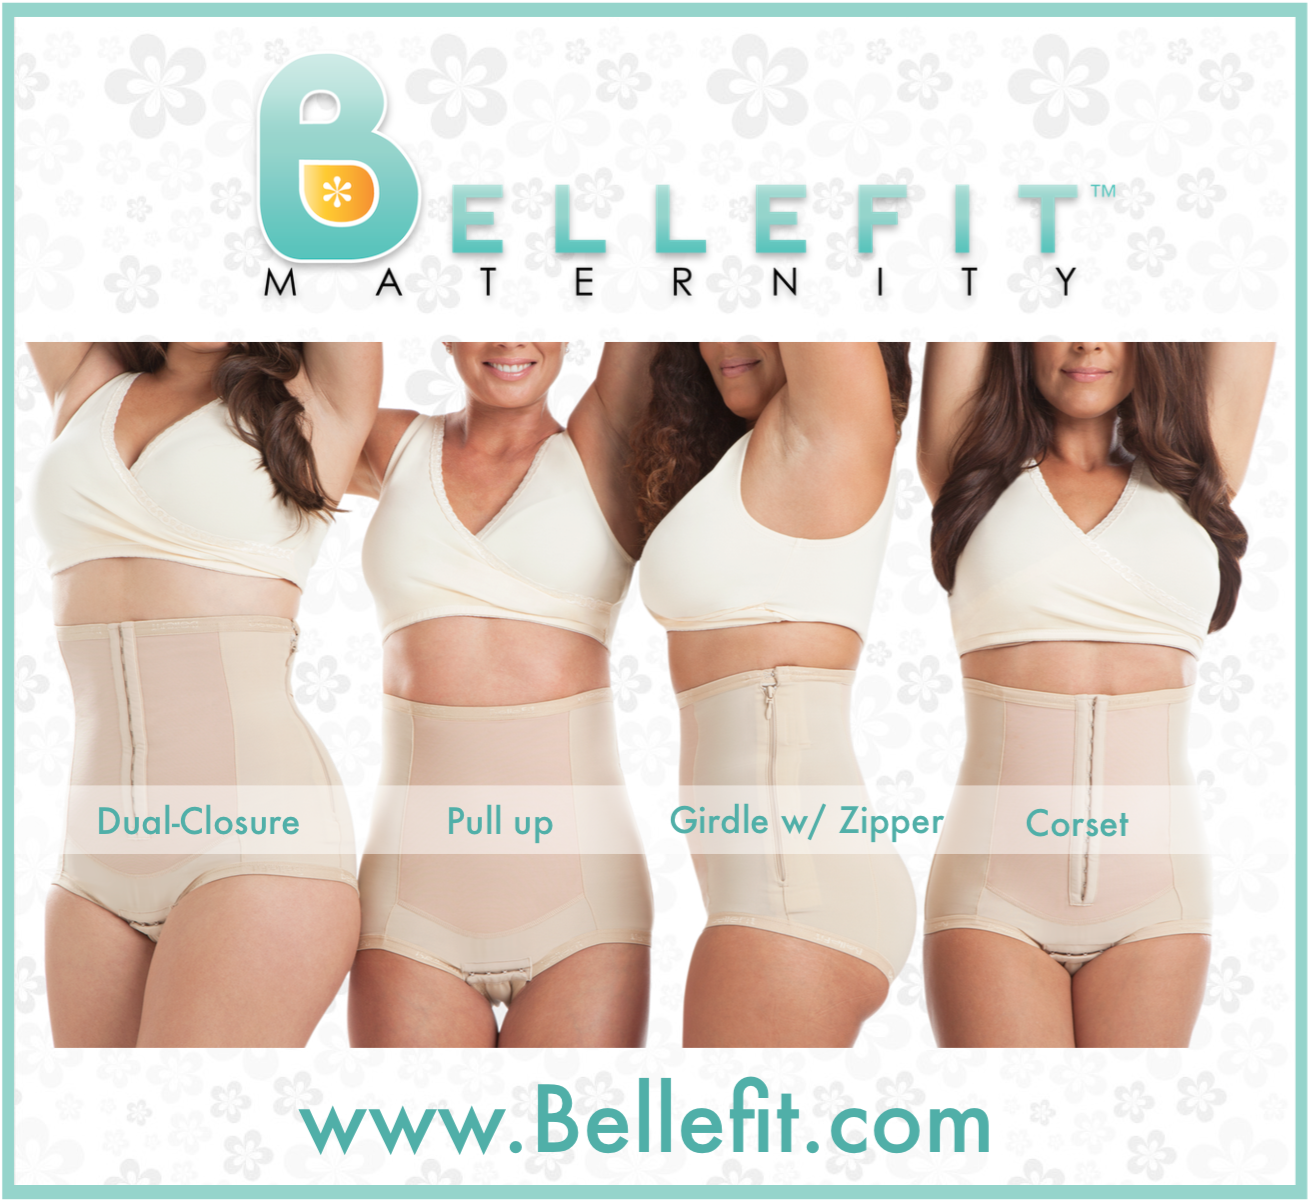 7df5e37de4a81 Recover Your Post Baby Body with Bellefit! Women who wear Bellefit after  giving birth say that Bellefit helps them feel